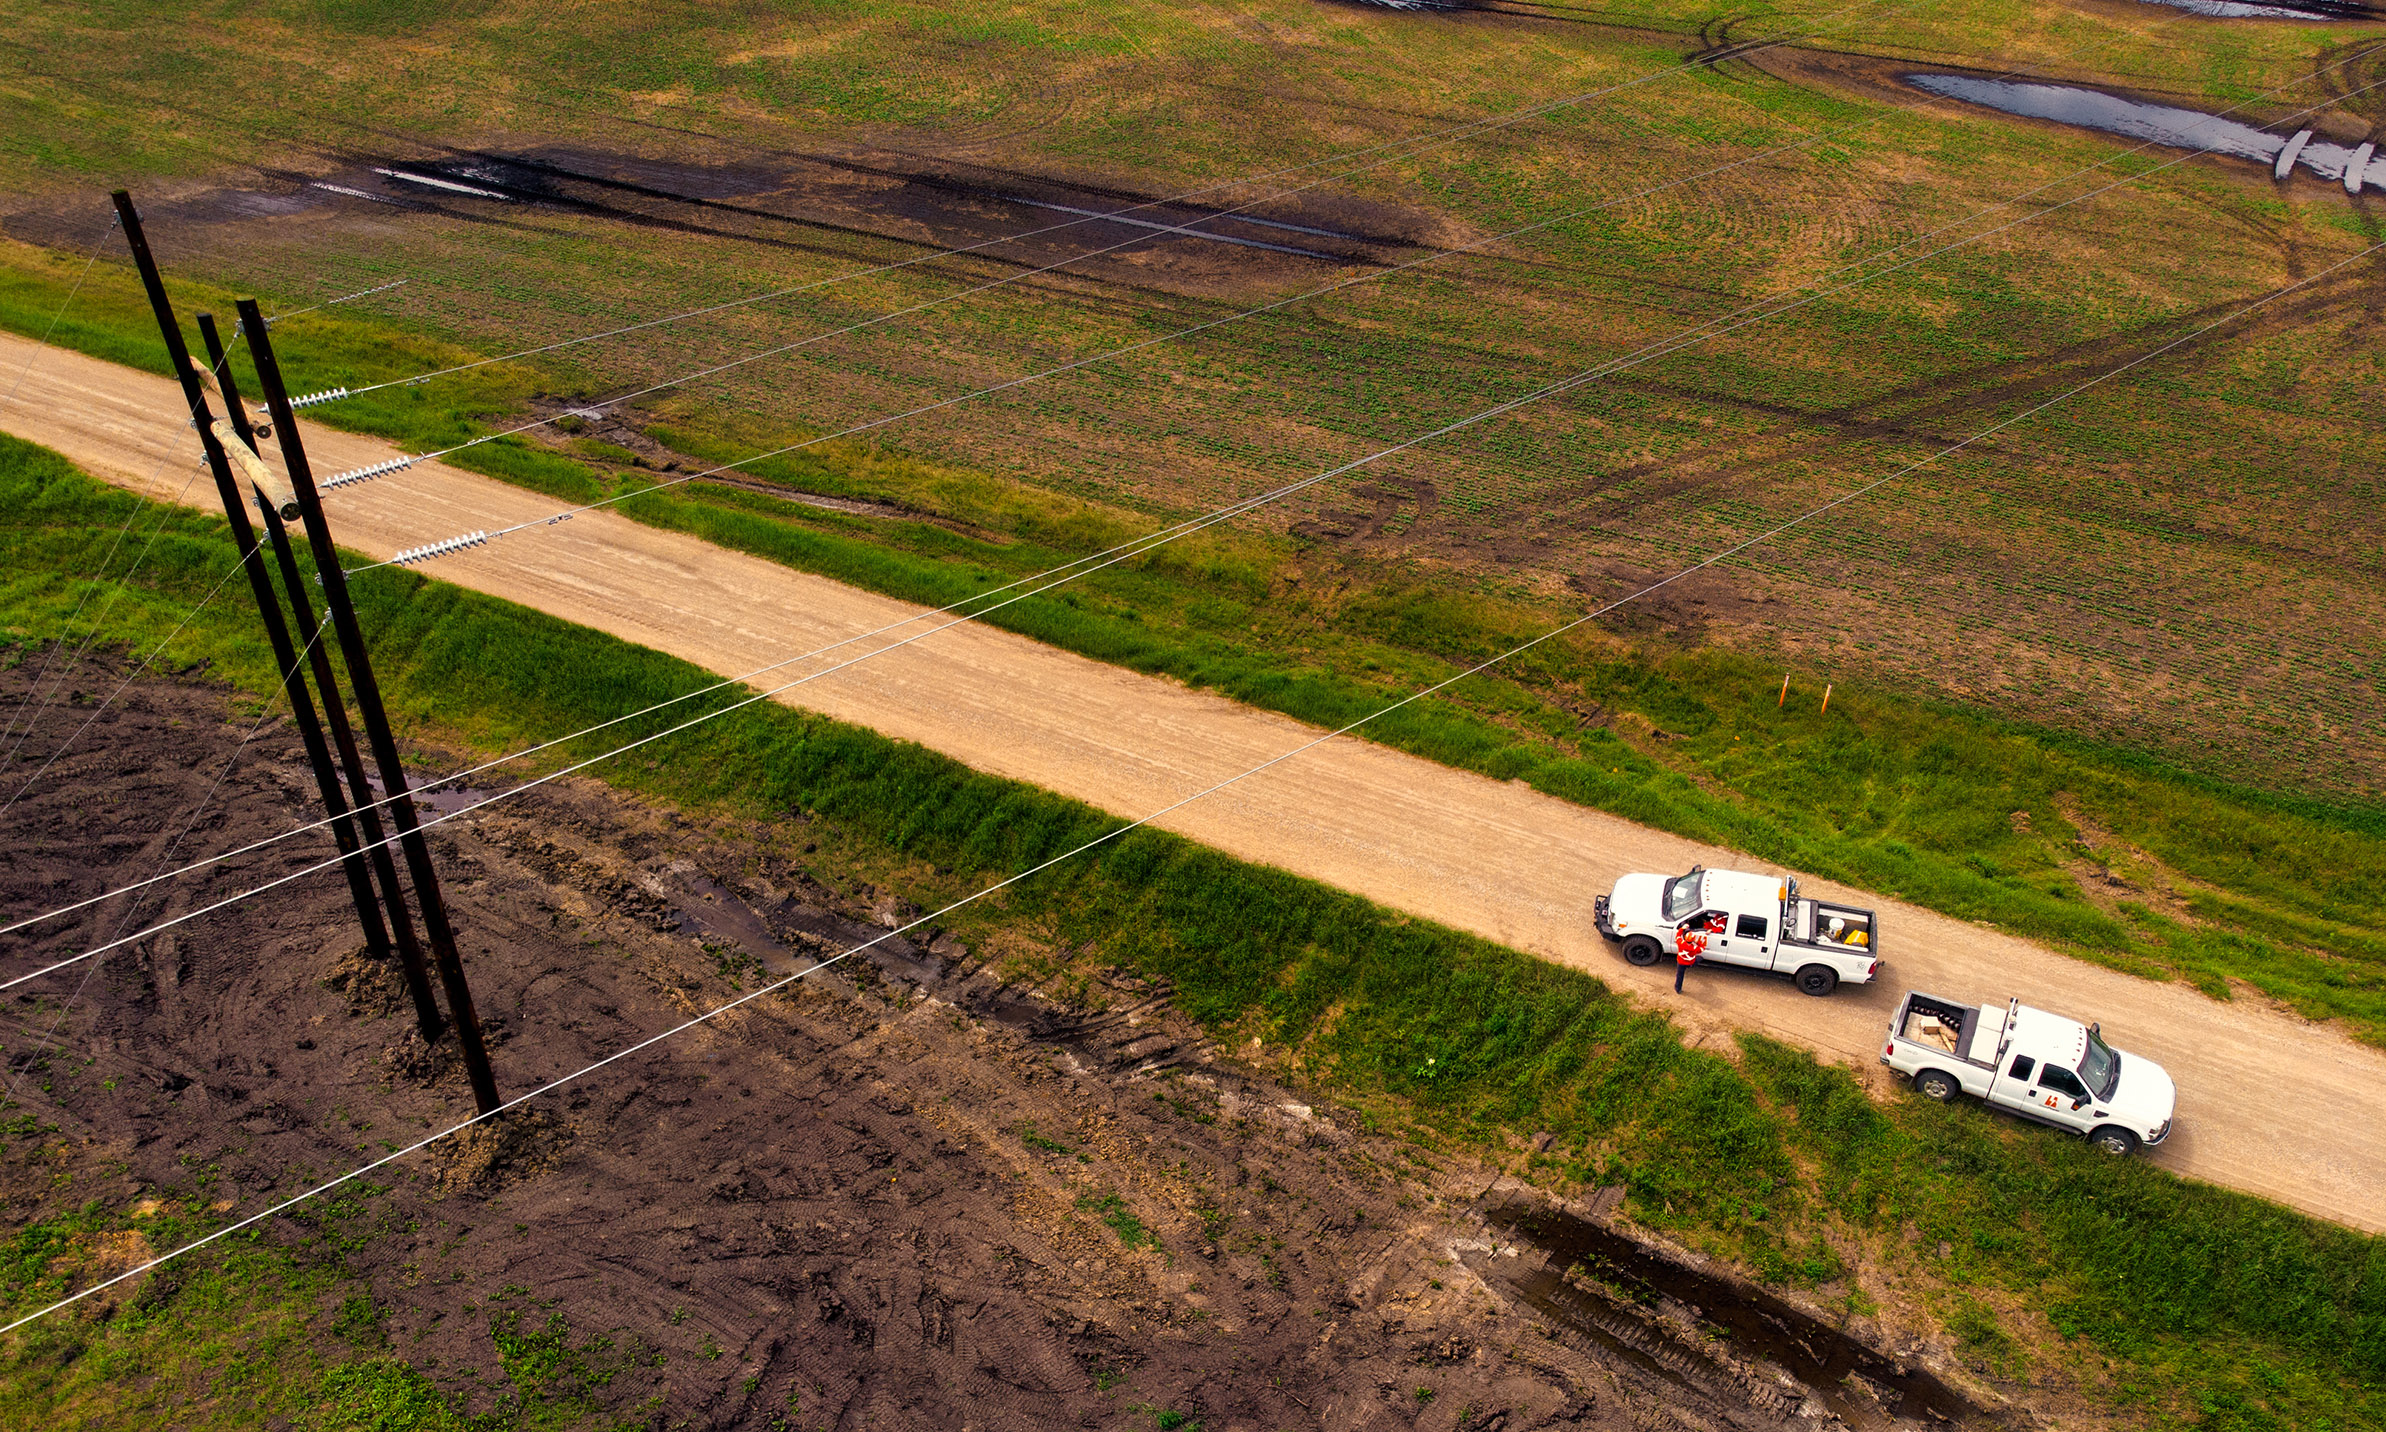 Ariel view of transmission lines with 2 SaskPower trucks on a grid road